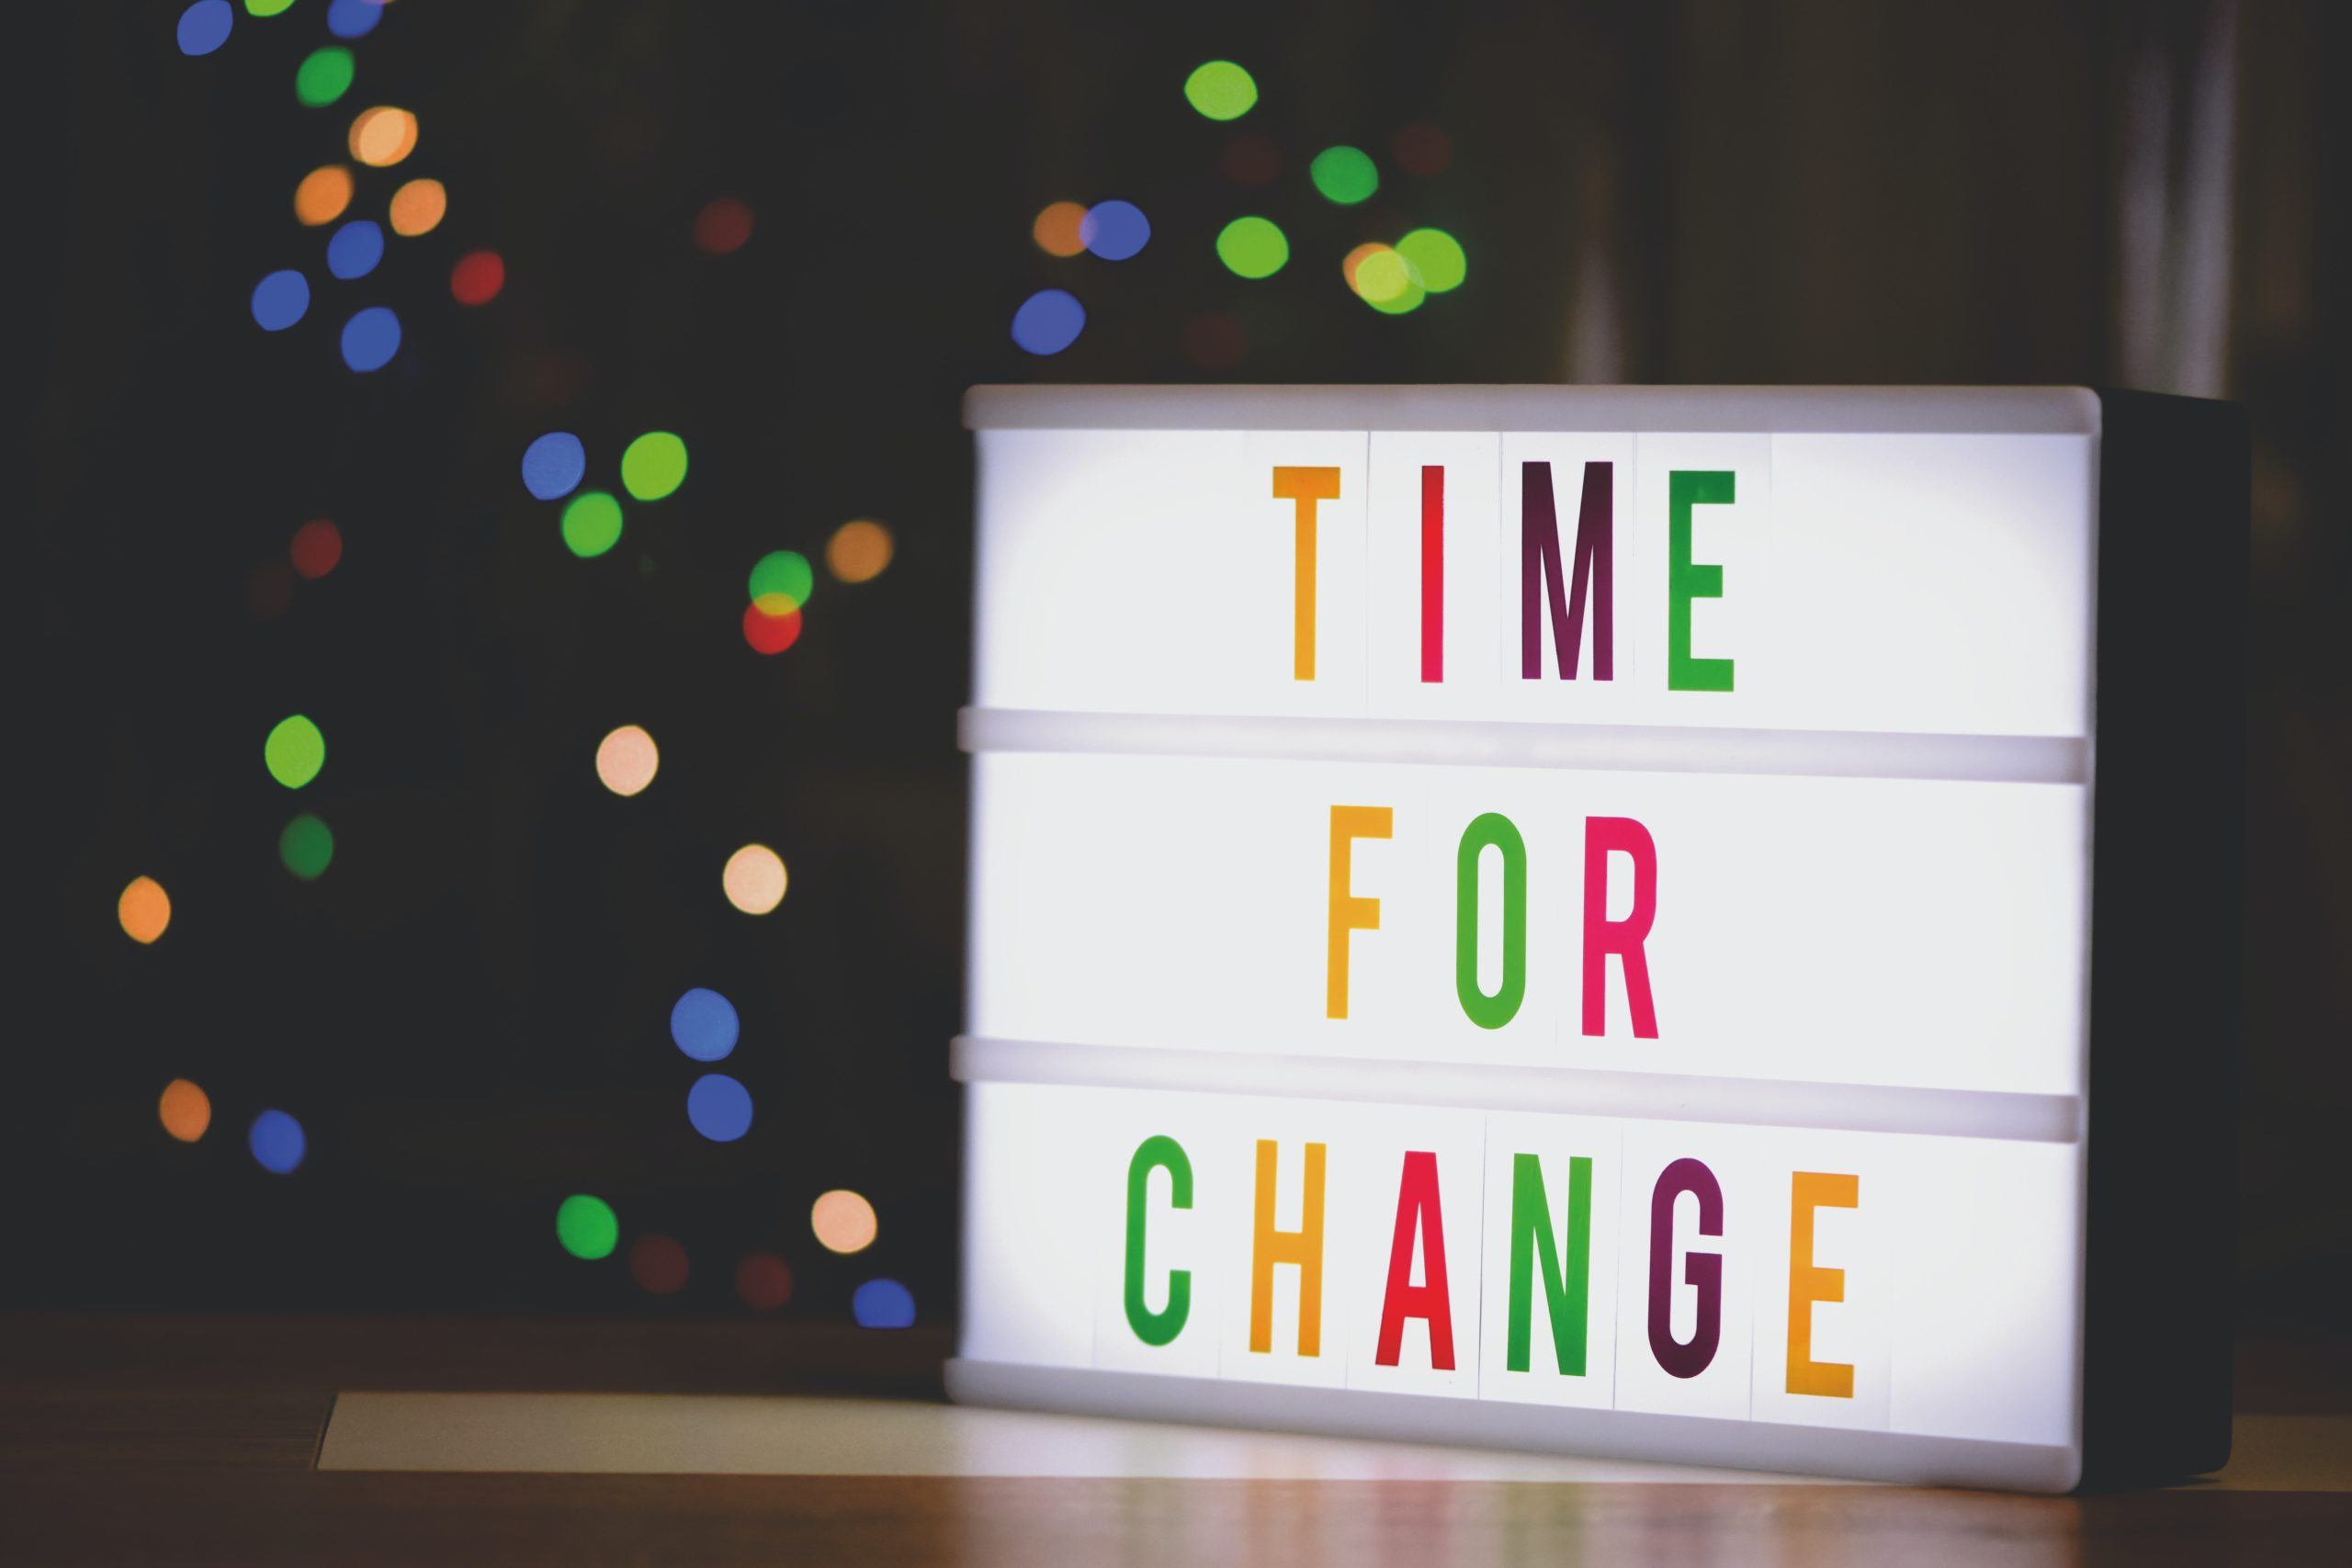 LED light box with letters in rainbow colors that spell Time for Change. Light box sits on a table and rainbow bokeh lights are in the background.